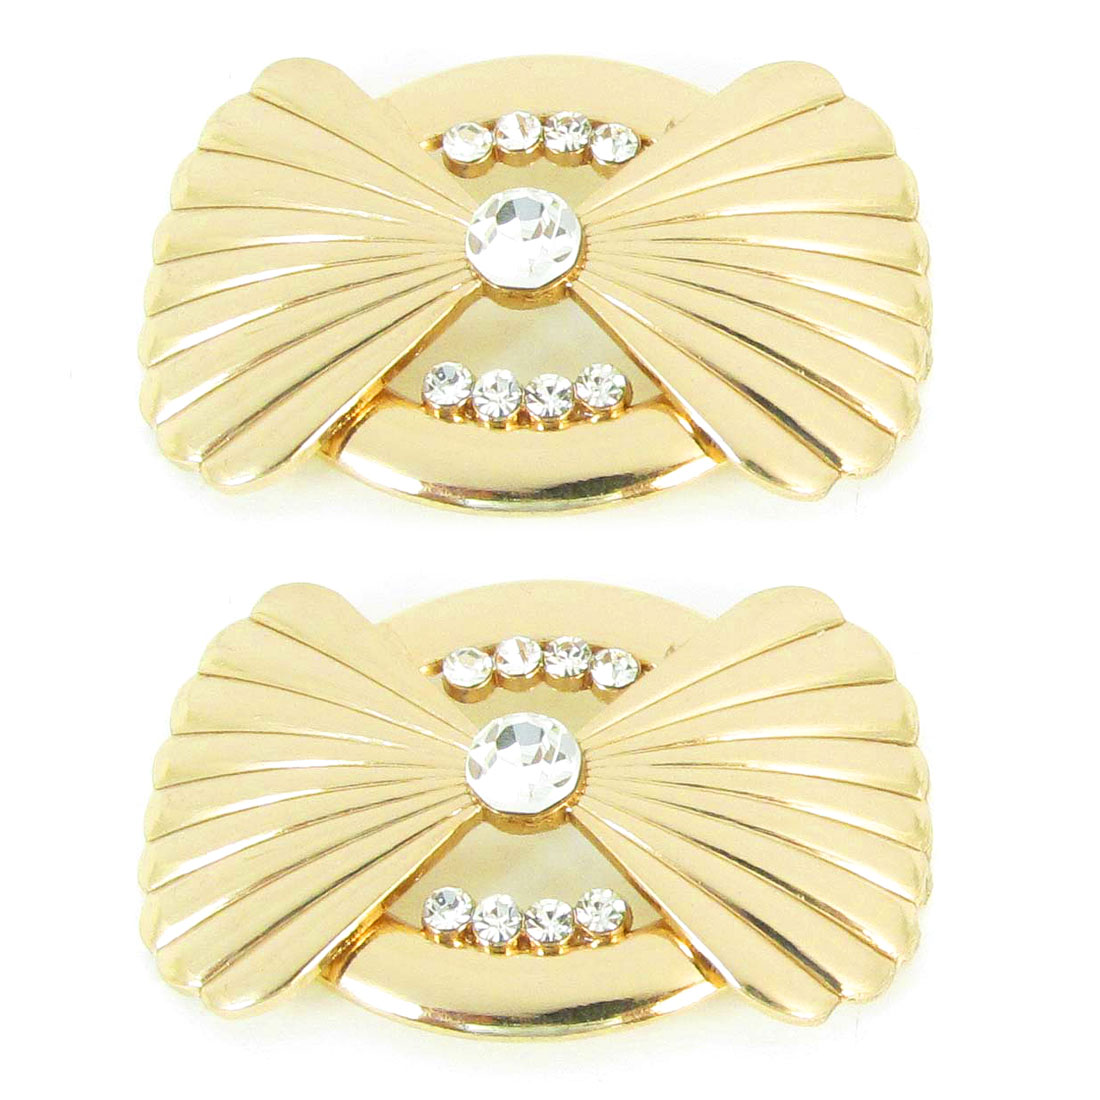 2Pcs Glittery Rhinestones Accent Bowknot Design Pin Buckles for Handbag Shoes